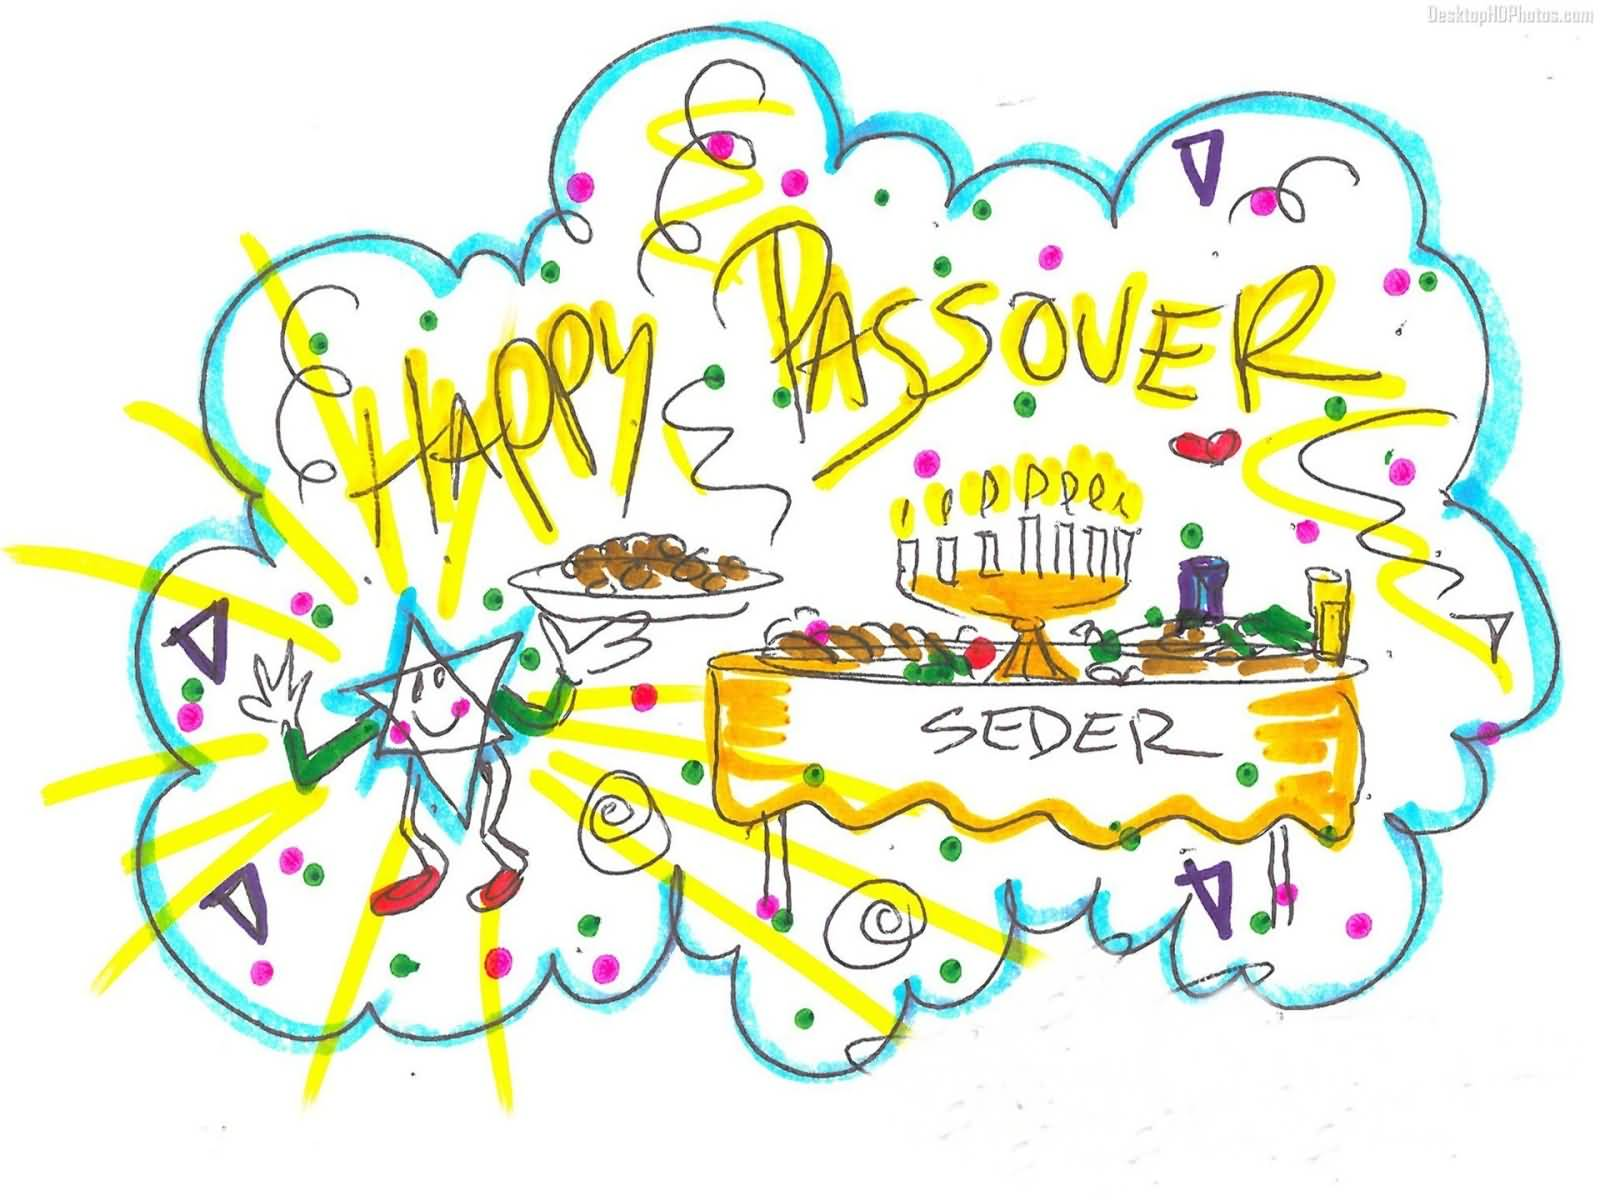 50 beautiful passover greeting pictures and images happy passover hand made greeting card m4hsunfo